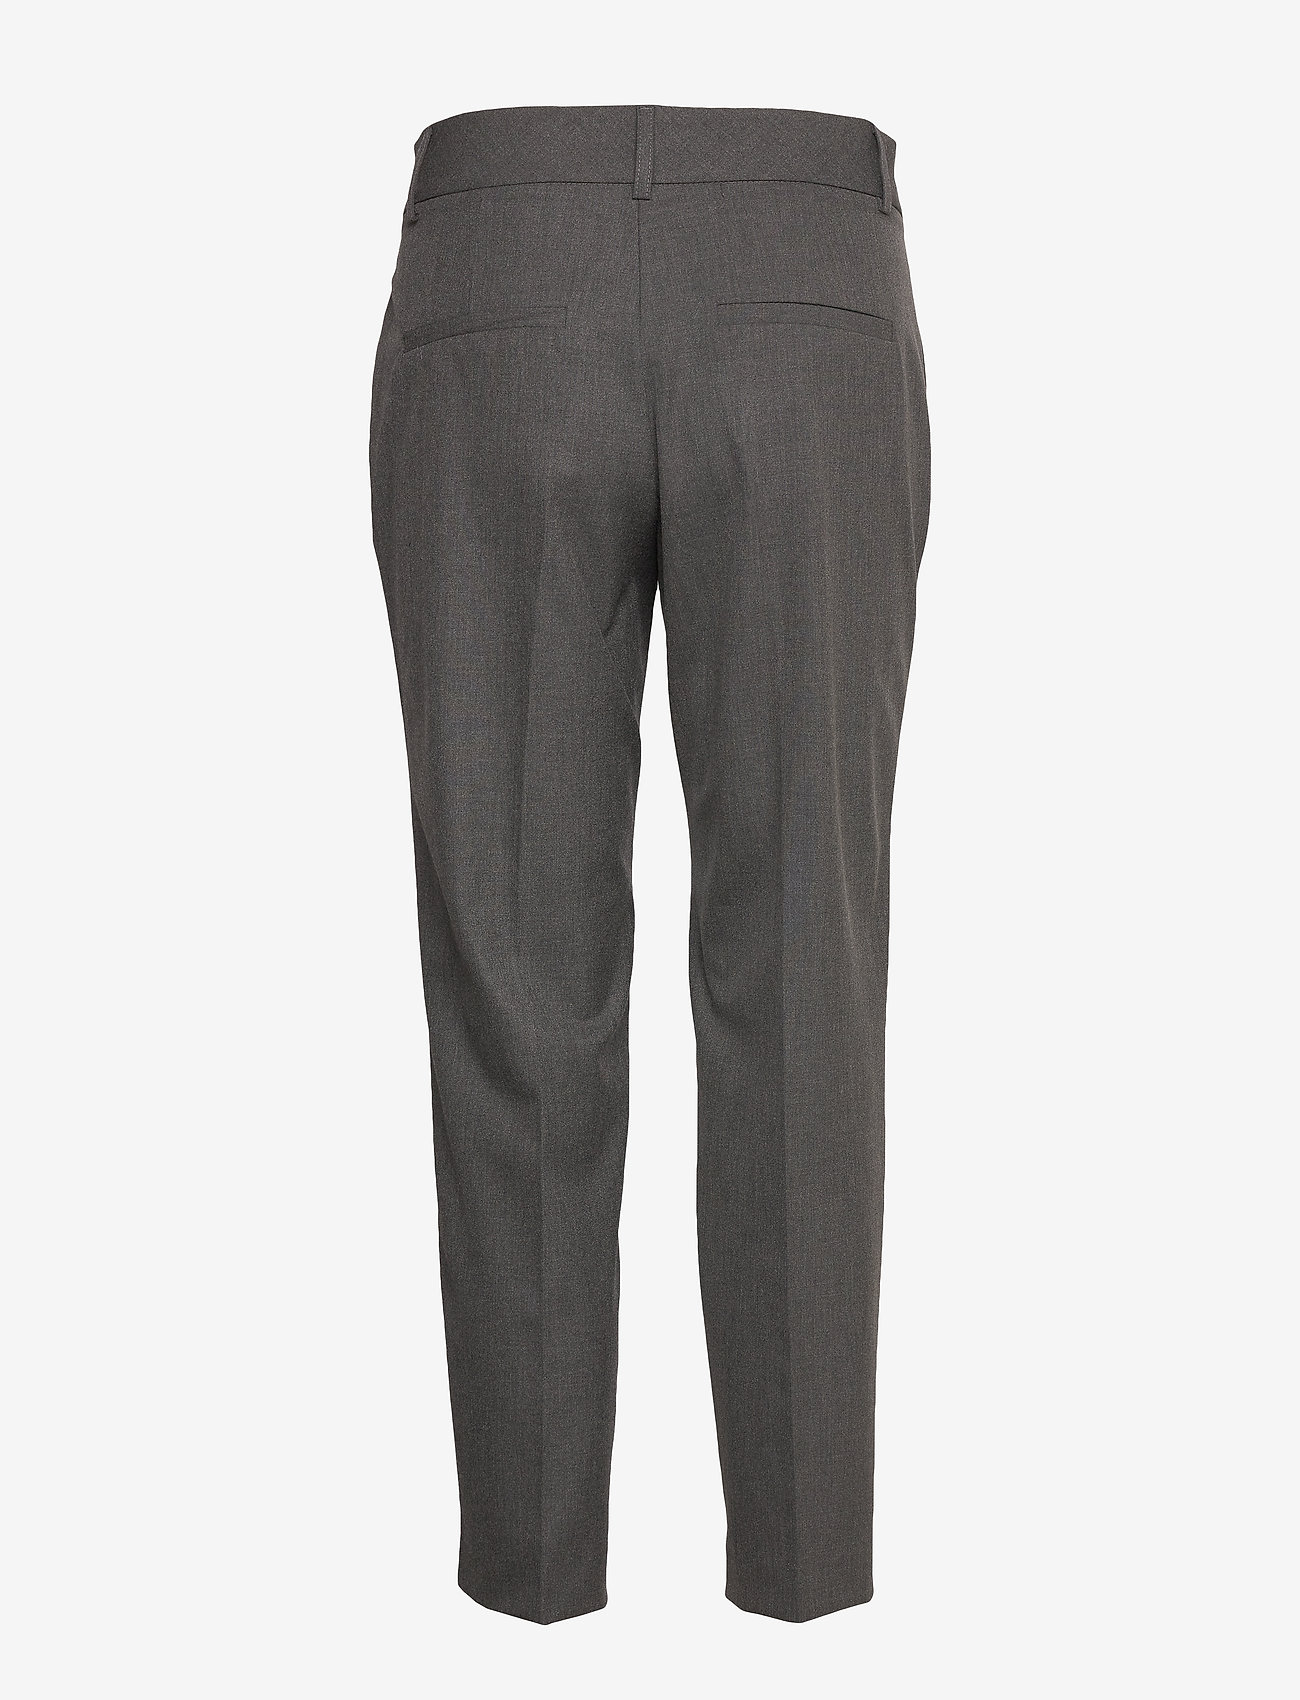 Selected Femme - SLFRIA MW CROPPED PANT DGM B NOOS - straight leg trousers - dark grey melange - 1